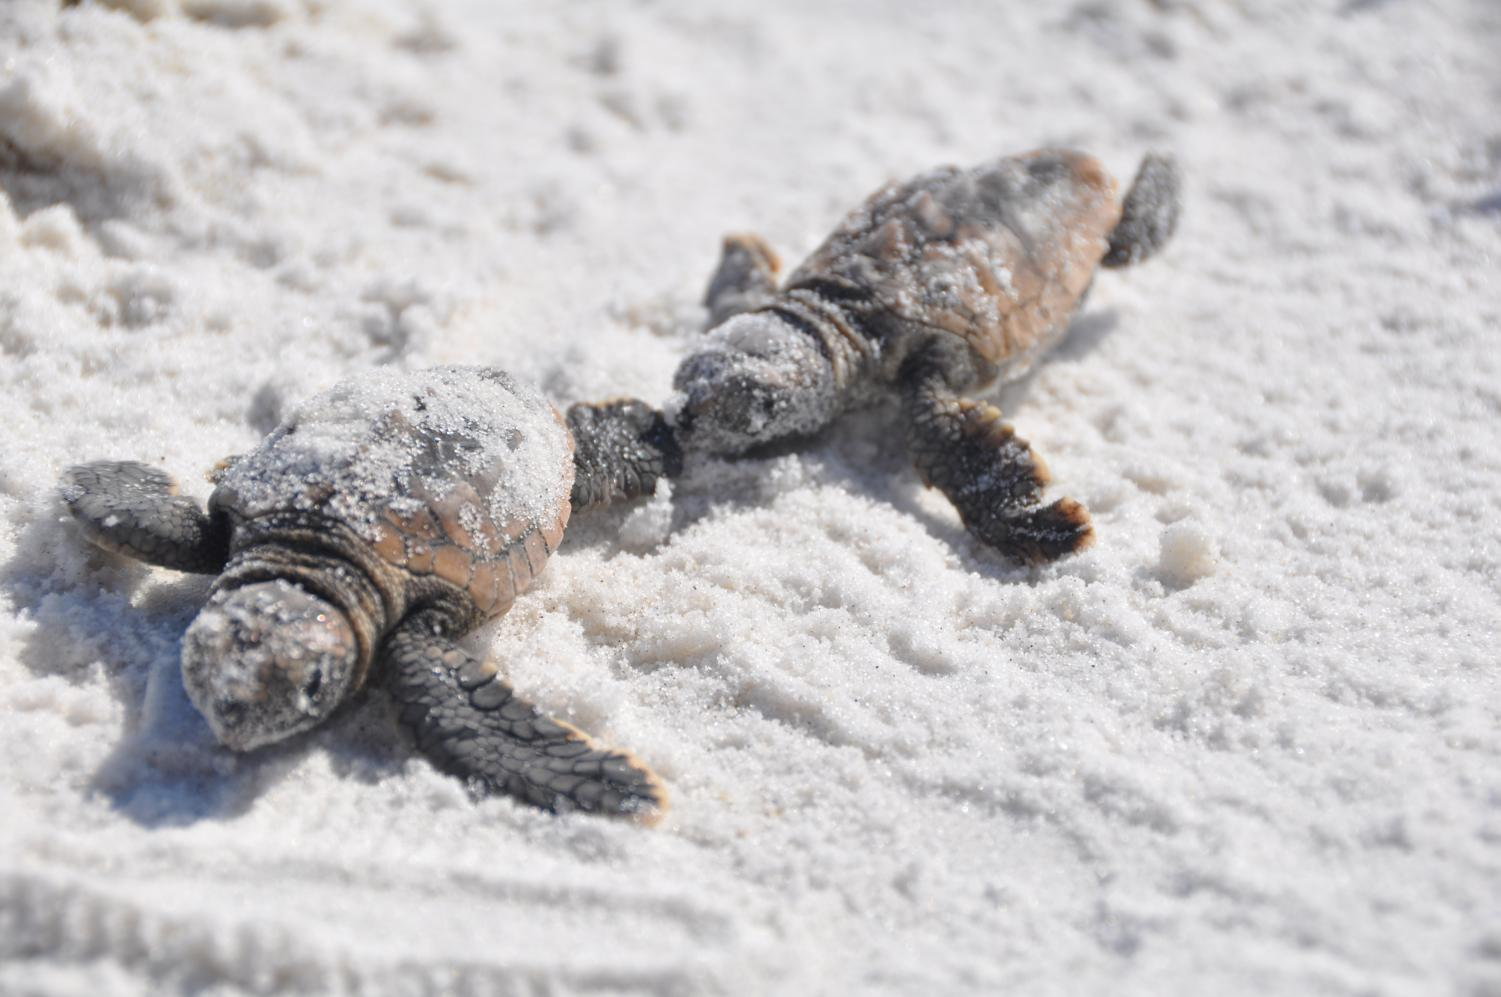 Sea turtles have begun hatching along Brevard County's beaches.